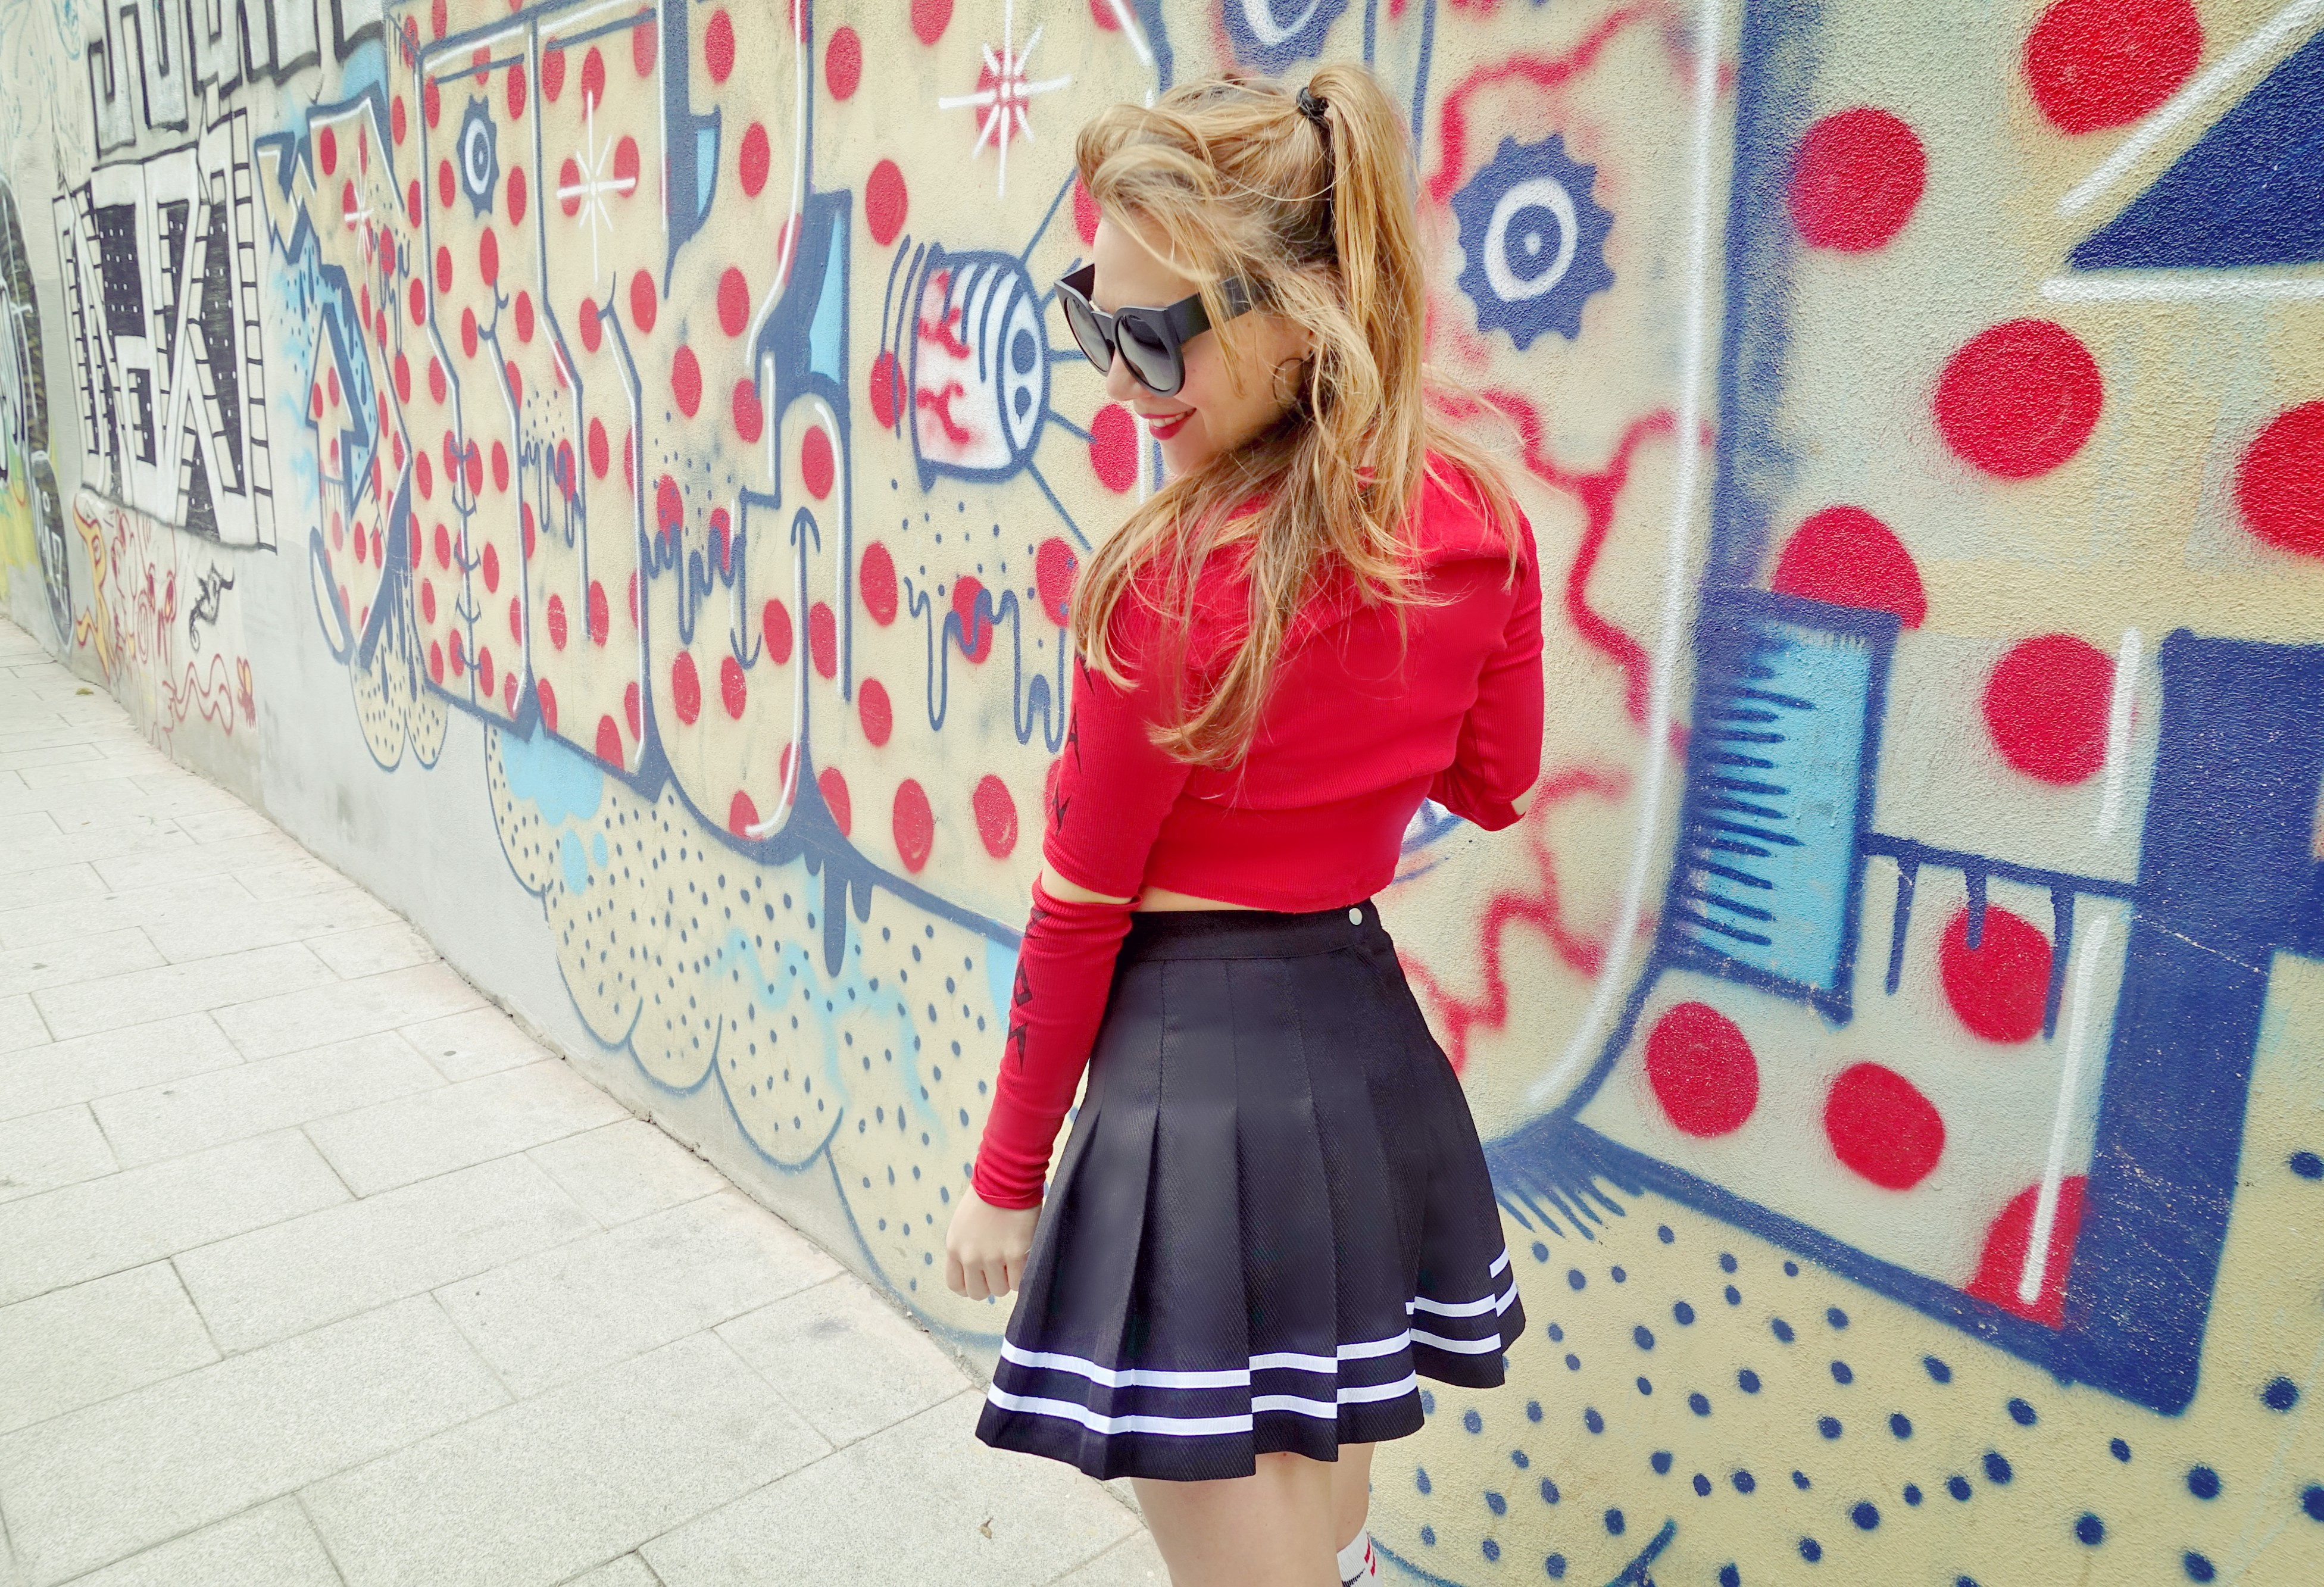 ChicAdicta-influencer-Madrid-blog-de-moda-fashionista-PiensaenChic-falda-cheerleader-hm-Chic-adicta-Piensa-en-Chic